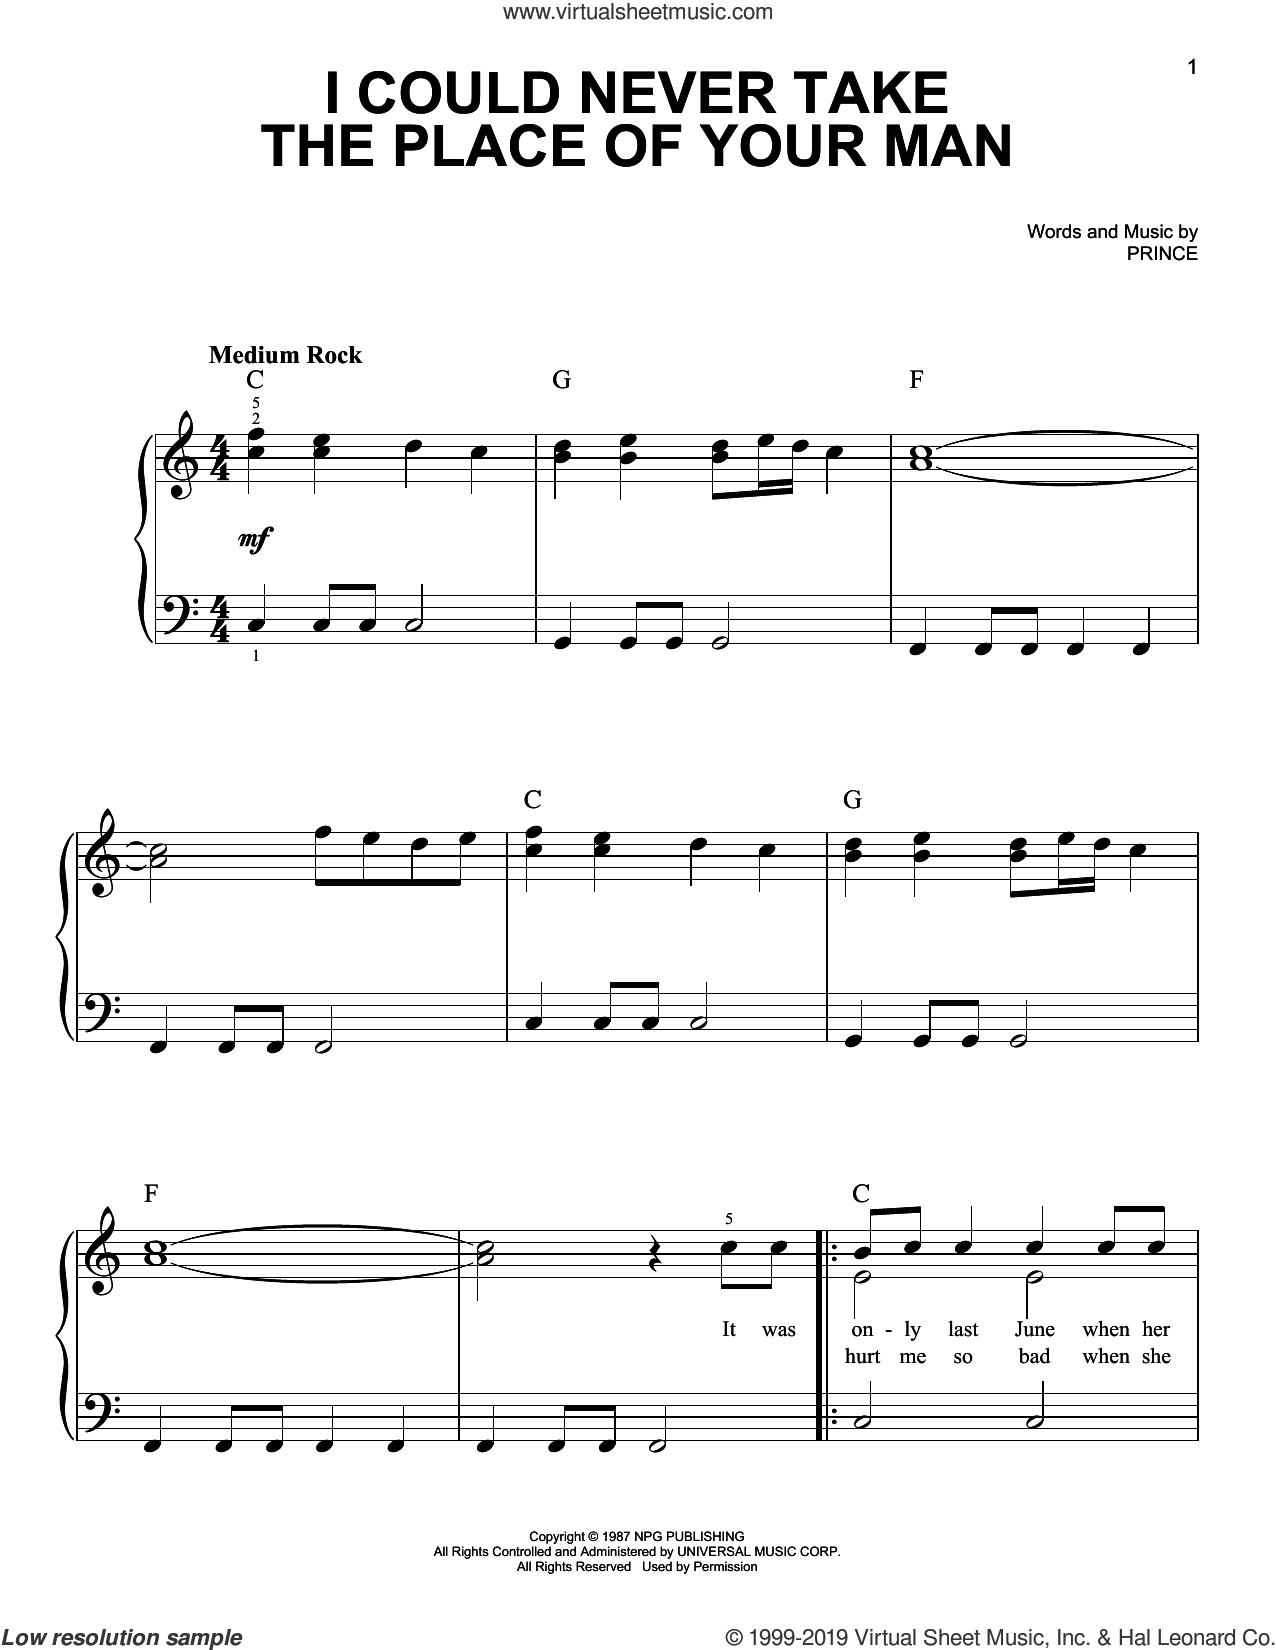 I Could Never Take The Place Of Your Man sheet music for piano solo by Prince, easy skill level